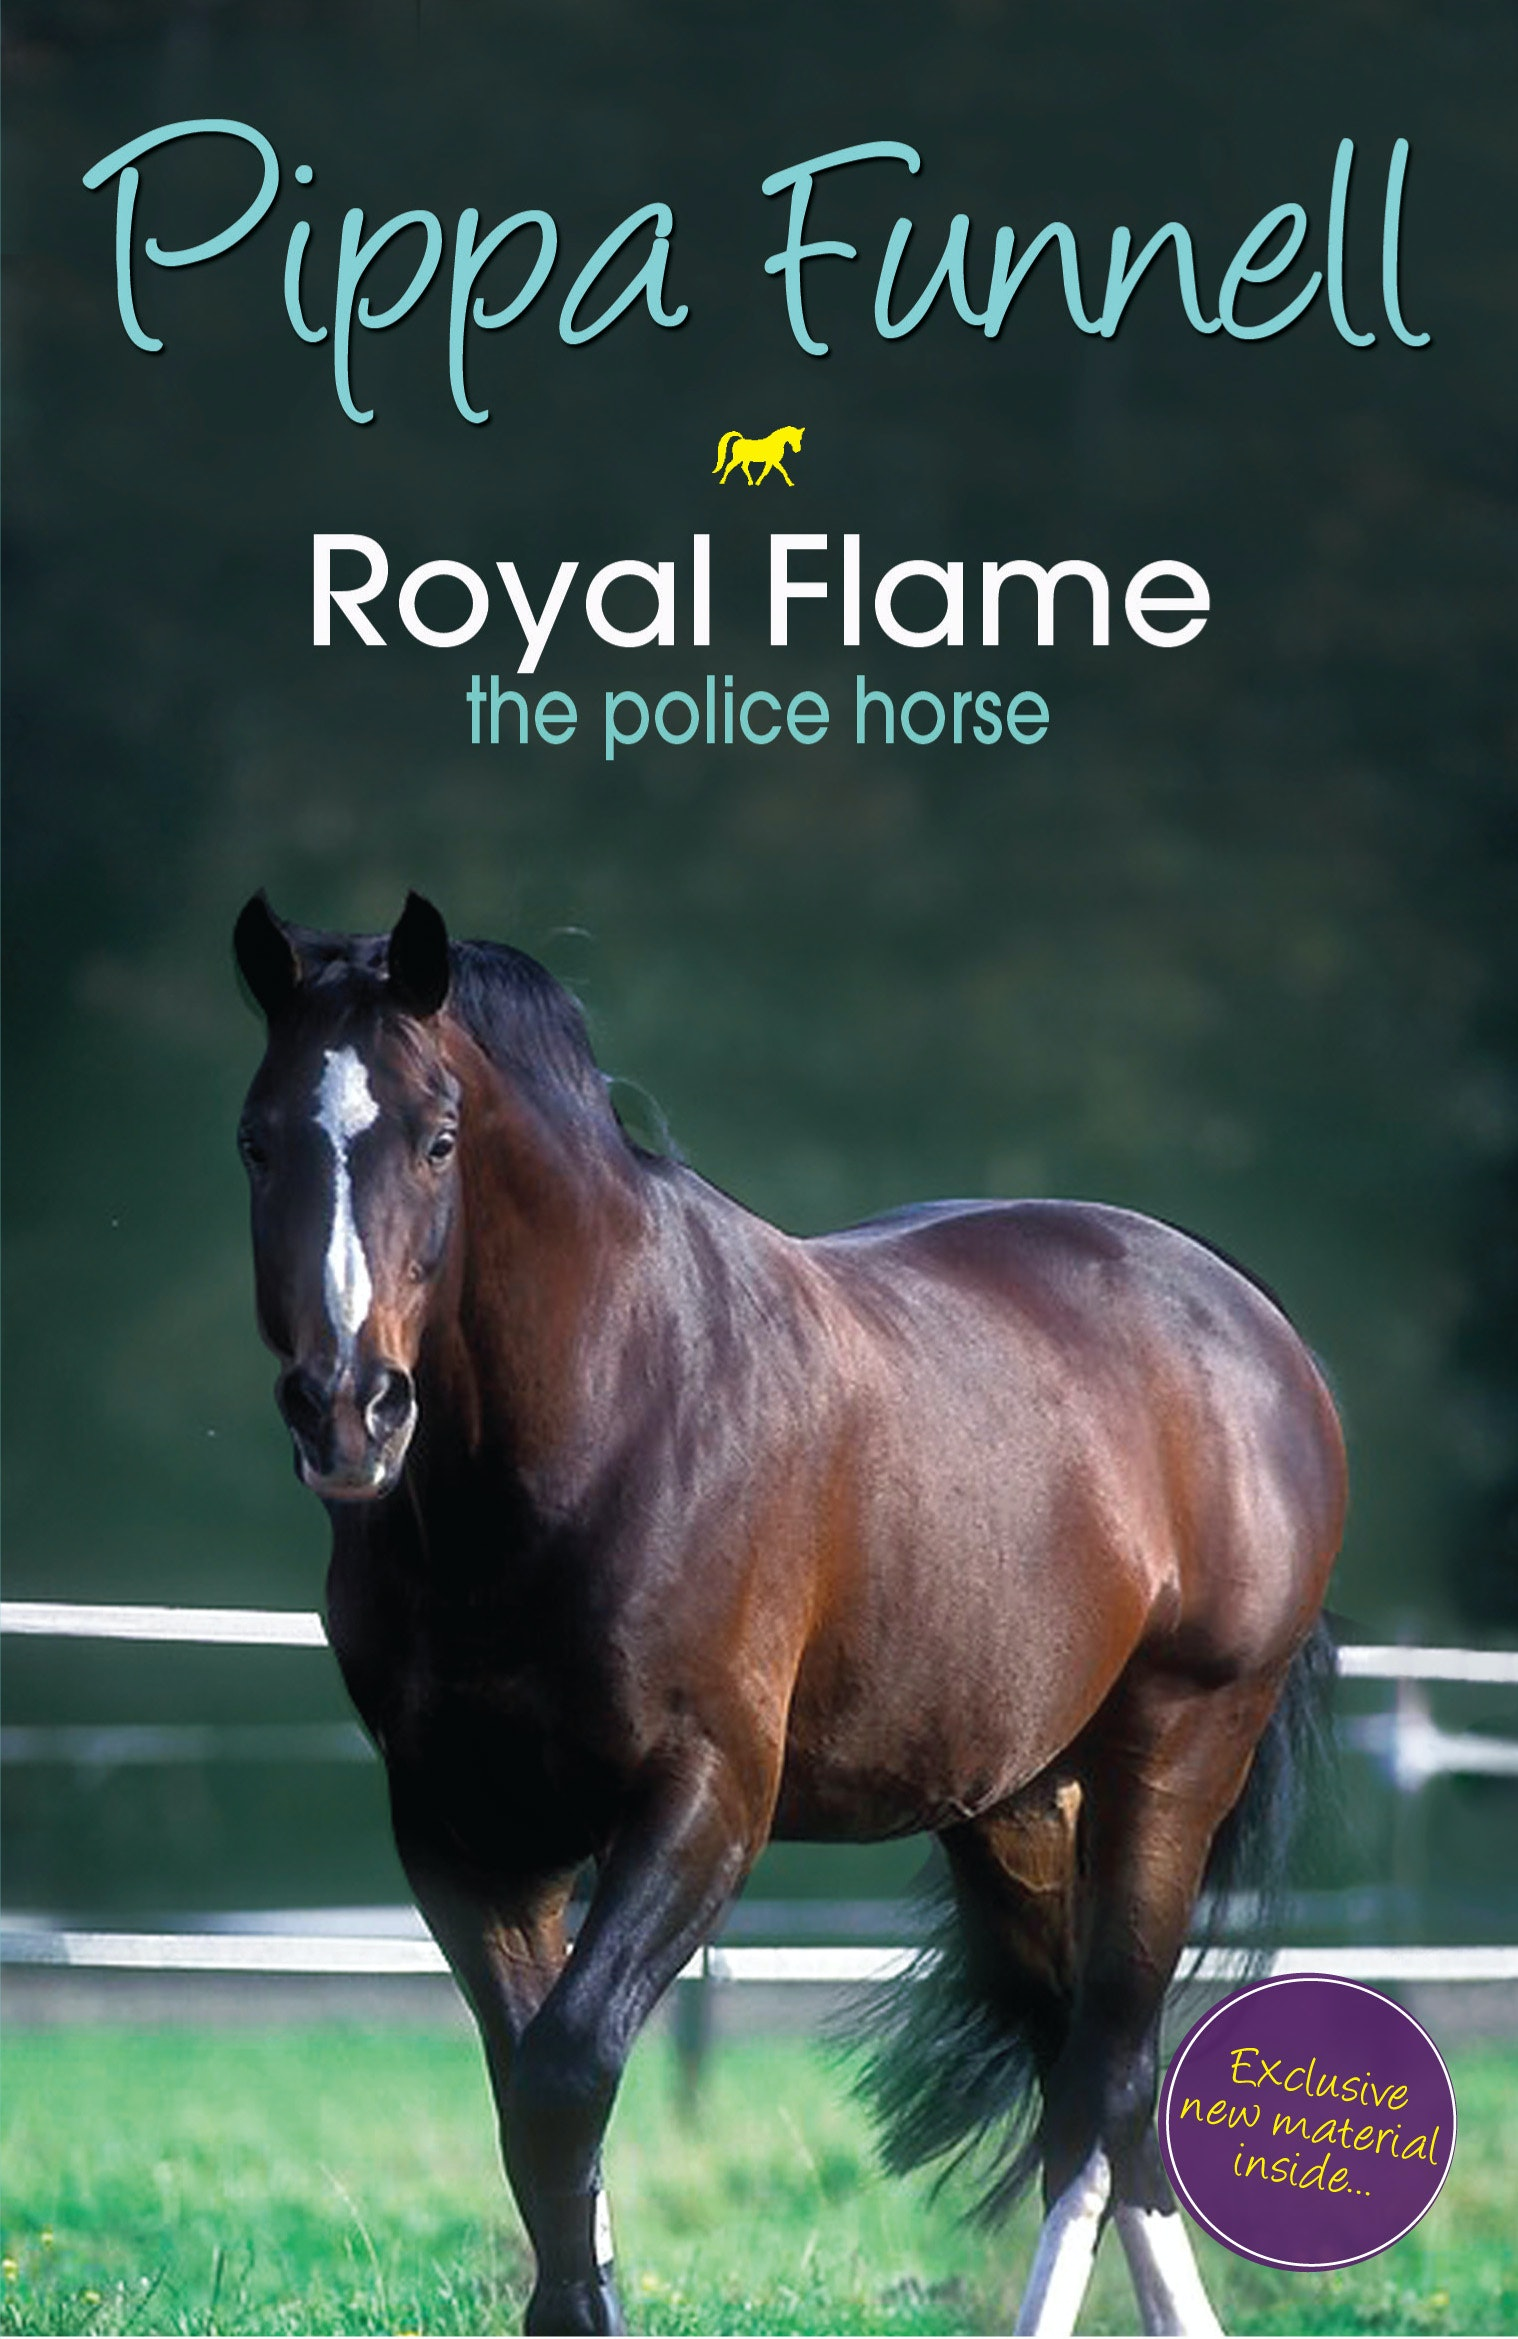 Tilly's Pony Tails 16 : Royal Flame The Police Horse Press Reviews